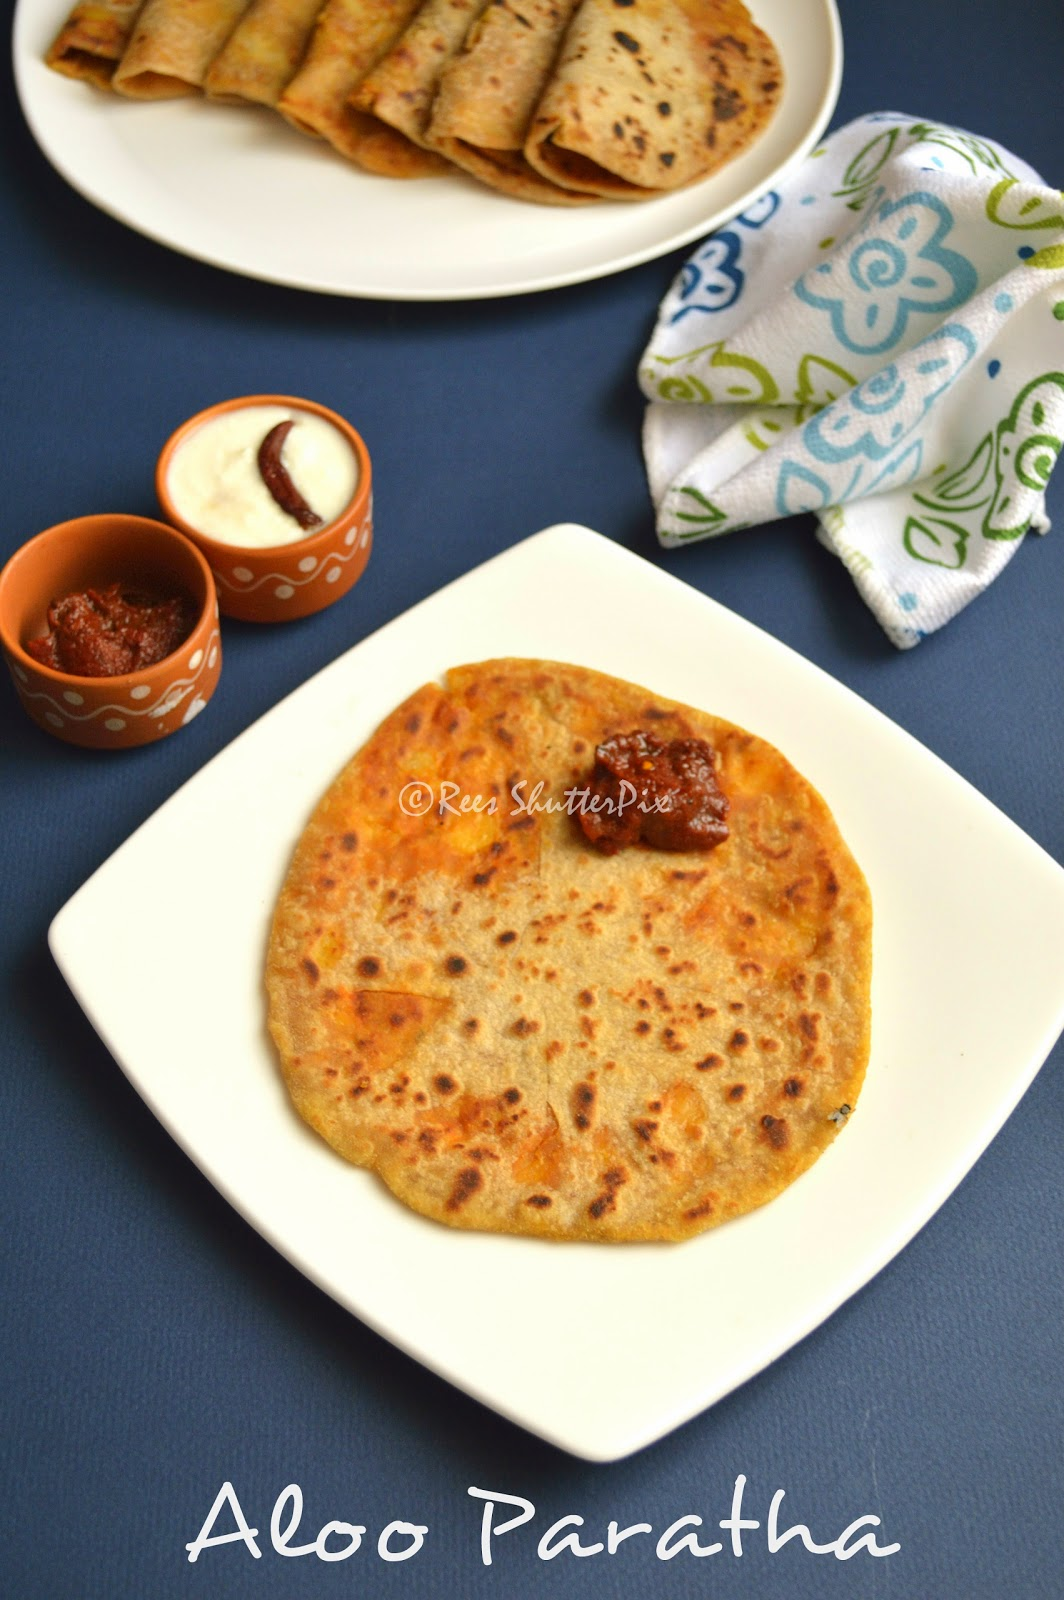 aloo paratha,aloo paratha recipe,how to make aloo paratha,prepare aloo paratha,make aloo paratha,how to make simple aloo paratha,easy aloo paratha,quick easy aloo paratha,easy to make aloo paratha,easy aloo ka paratha recipe